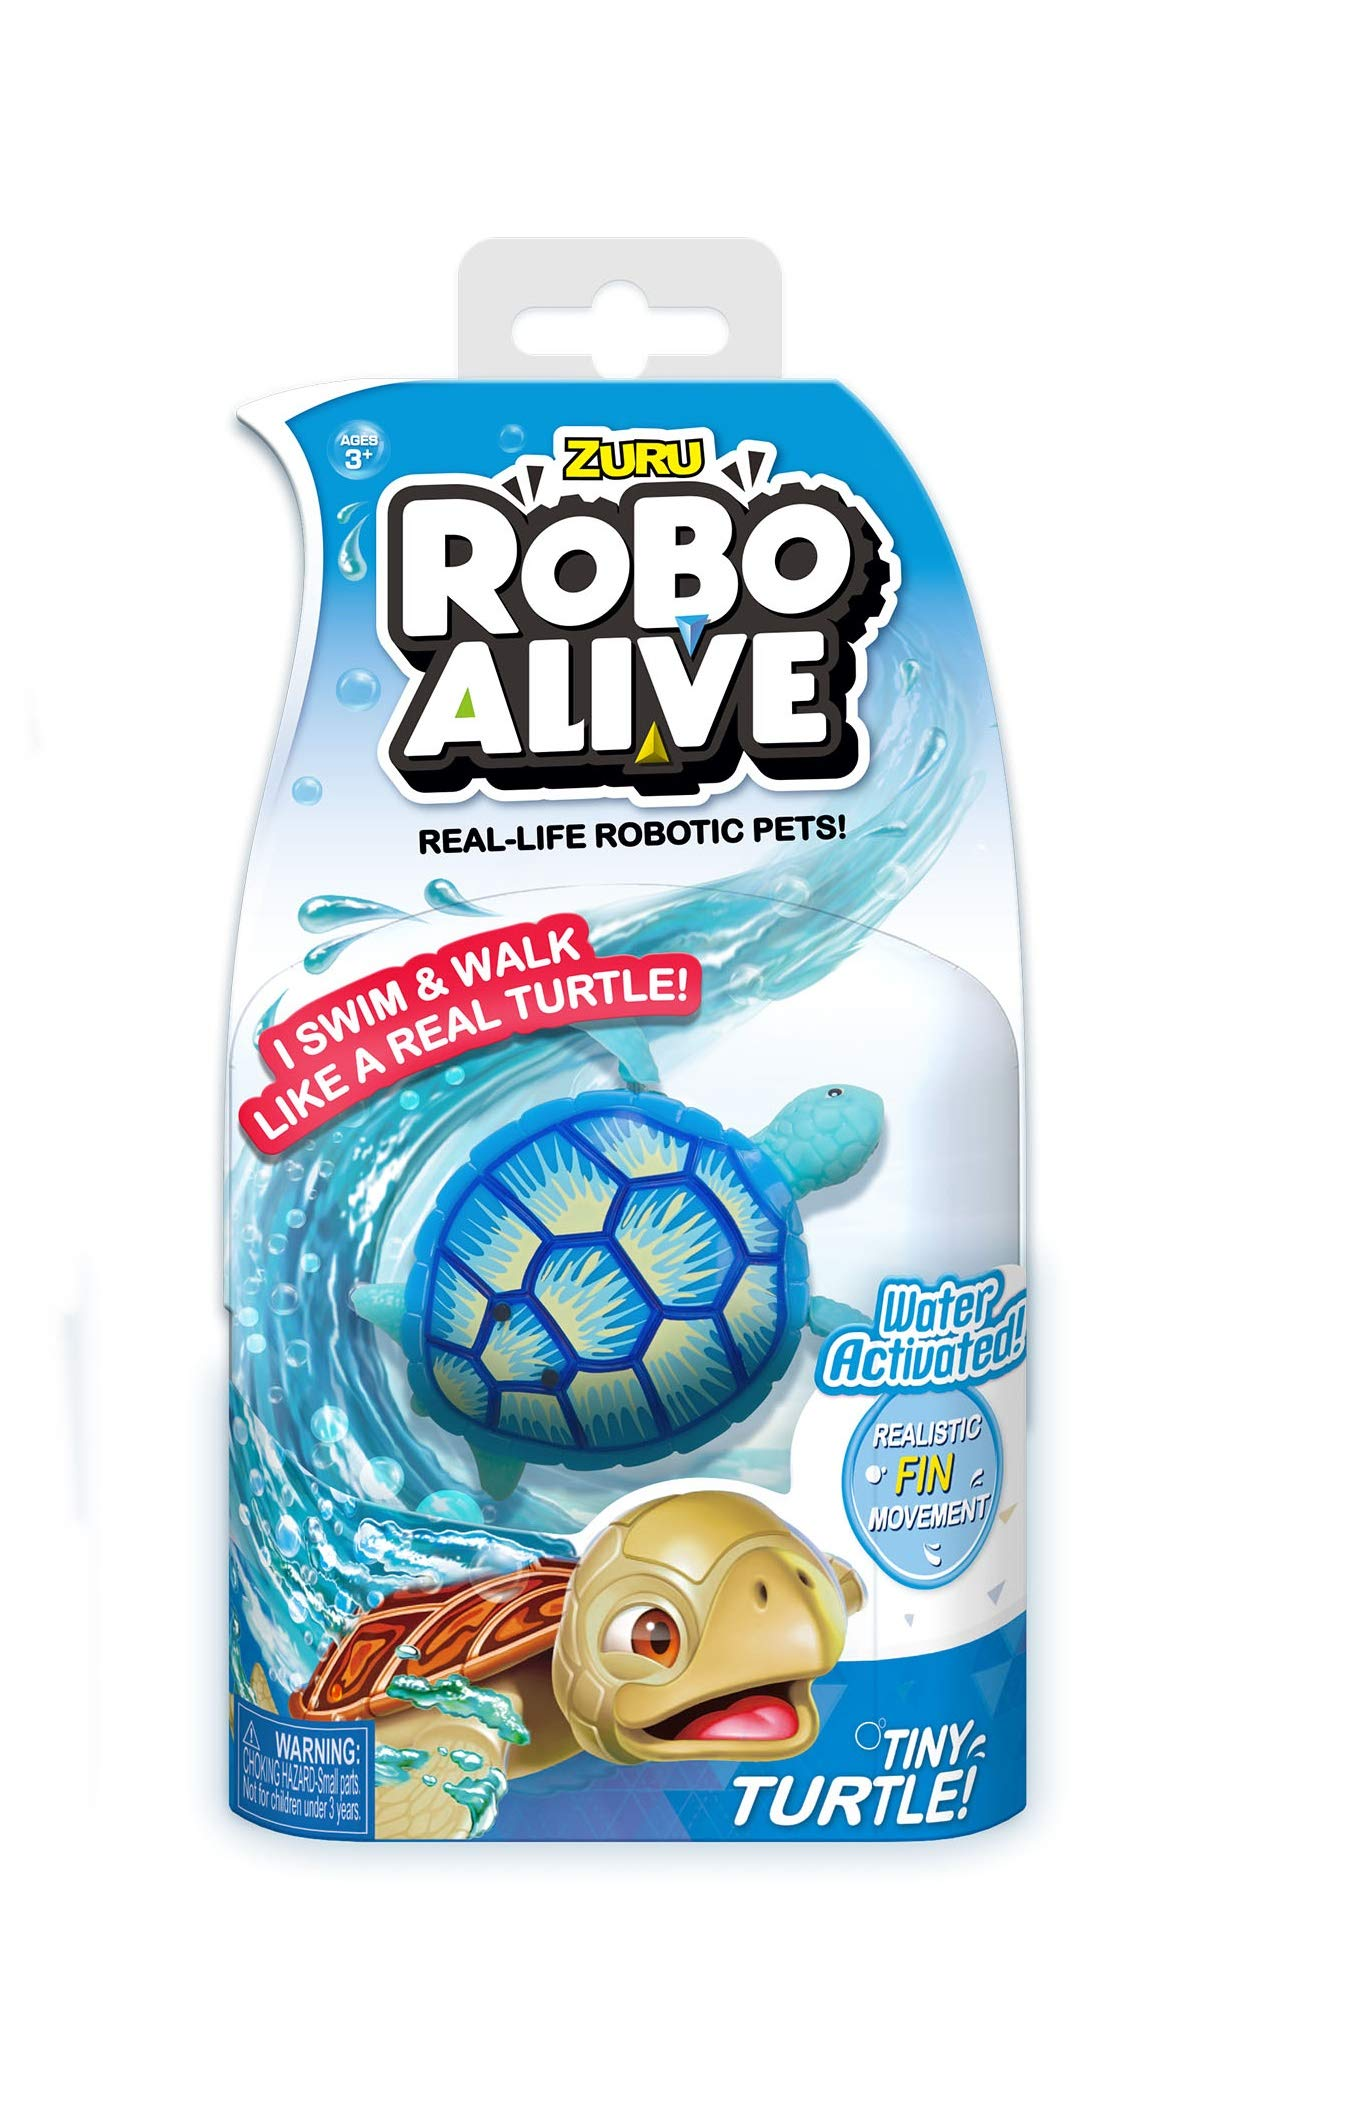 New! Limited Edition ROBO ALIVE Tiny Turtle Collection - Blue Sea Turtle - Real Life Robotic Pets - Perfect for Stocking Stuffer and Bath Toy - Water Activated with Realistic Fin Movement! by  (Image #1)